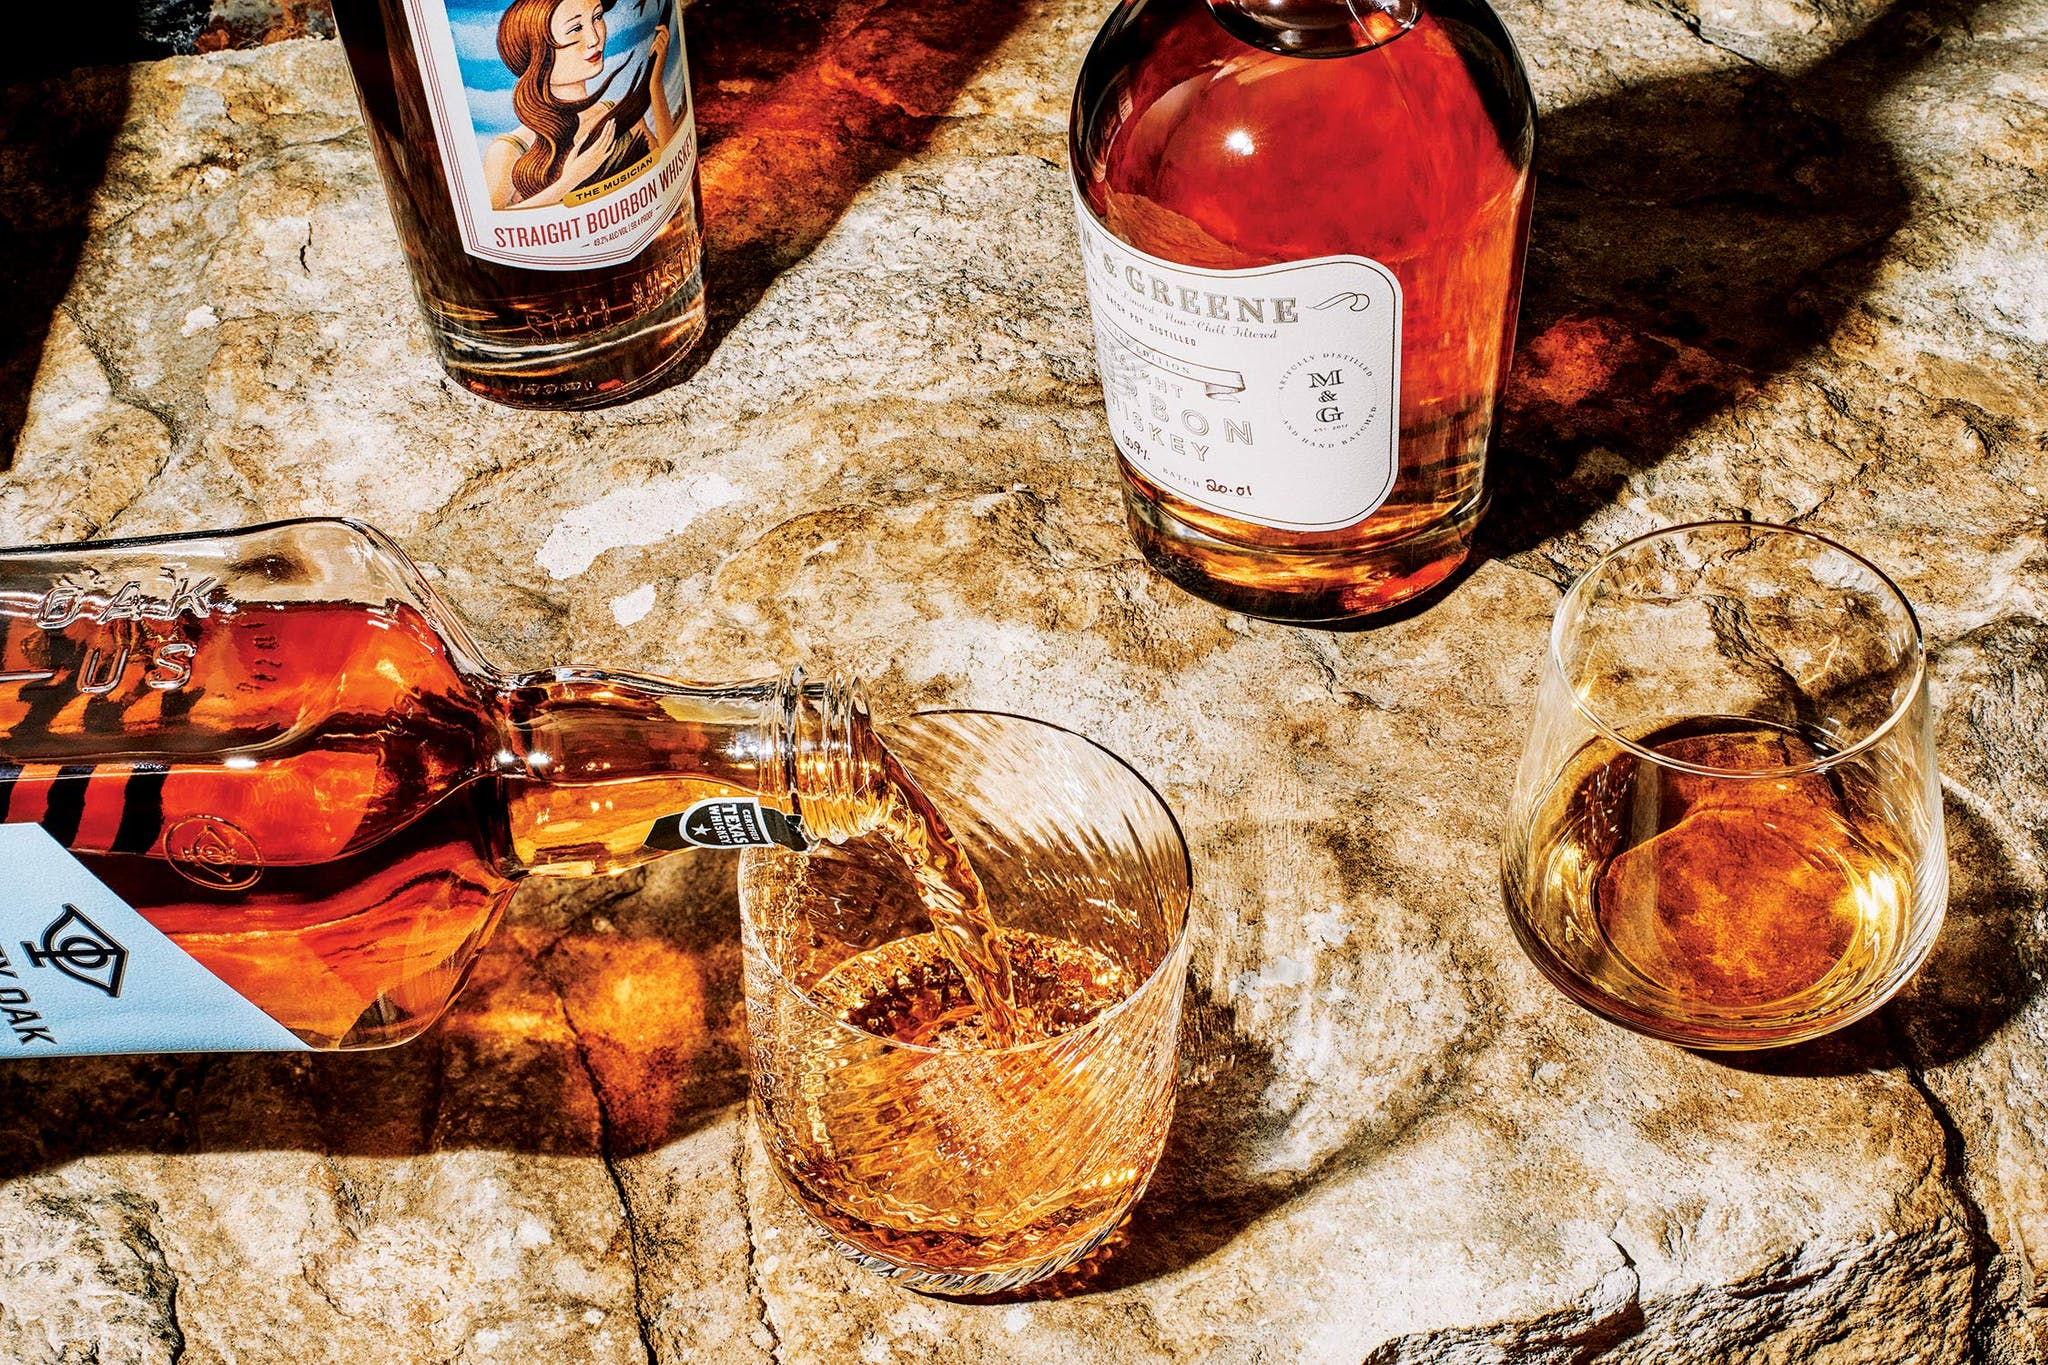 These new grain-to-glass bourbon releases are proof that the state's still-young whiskey industry is developing a bold regional profile.